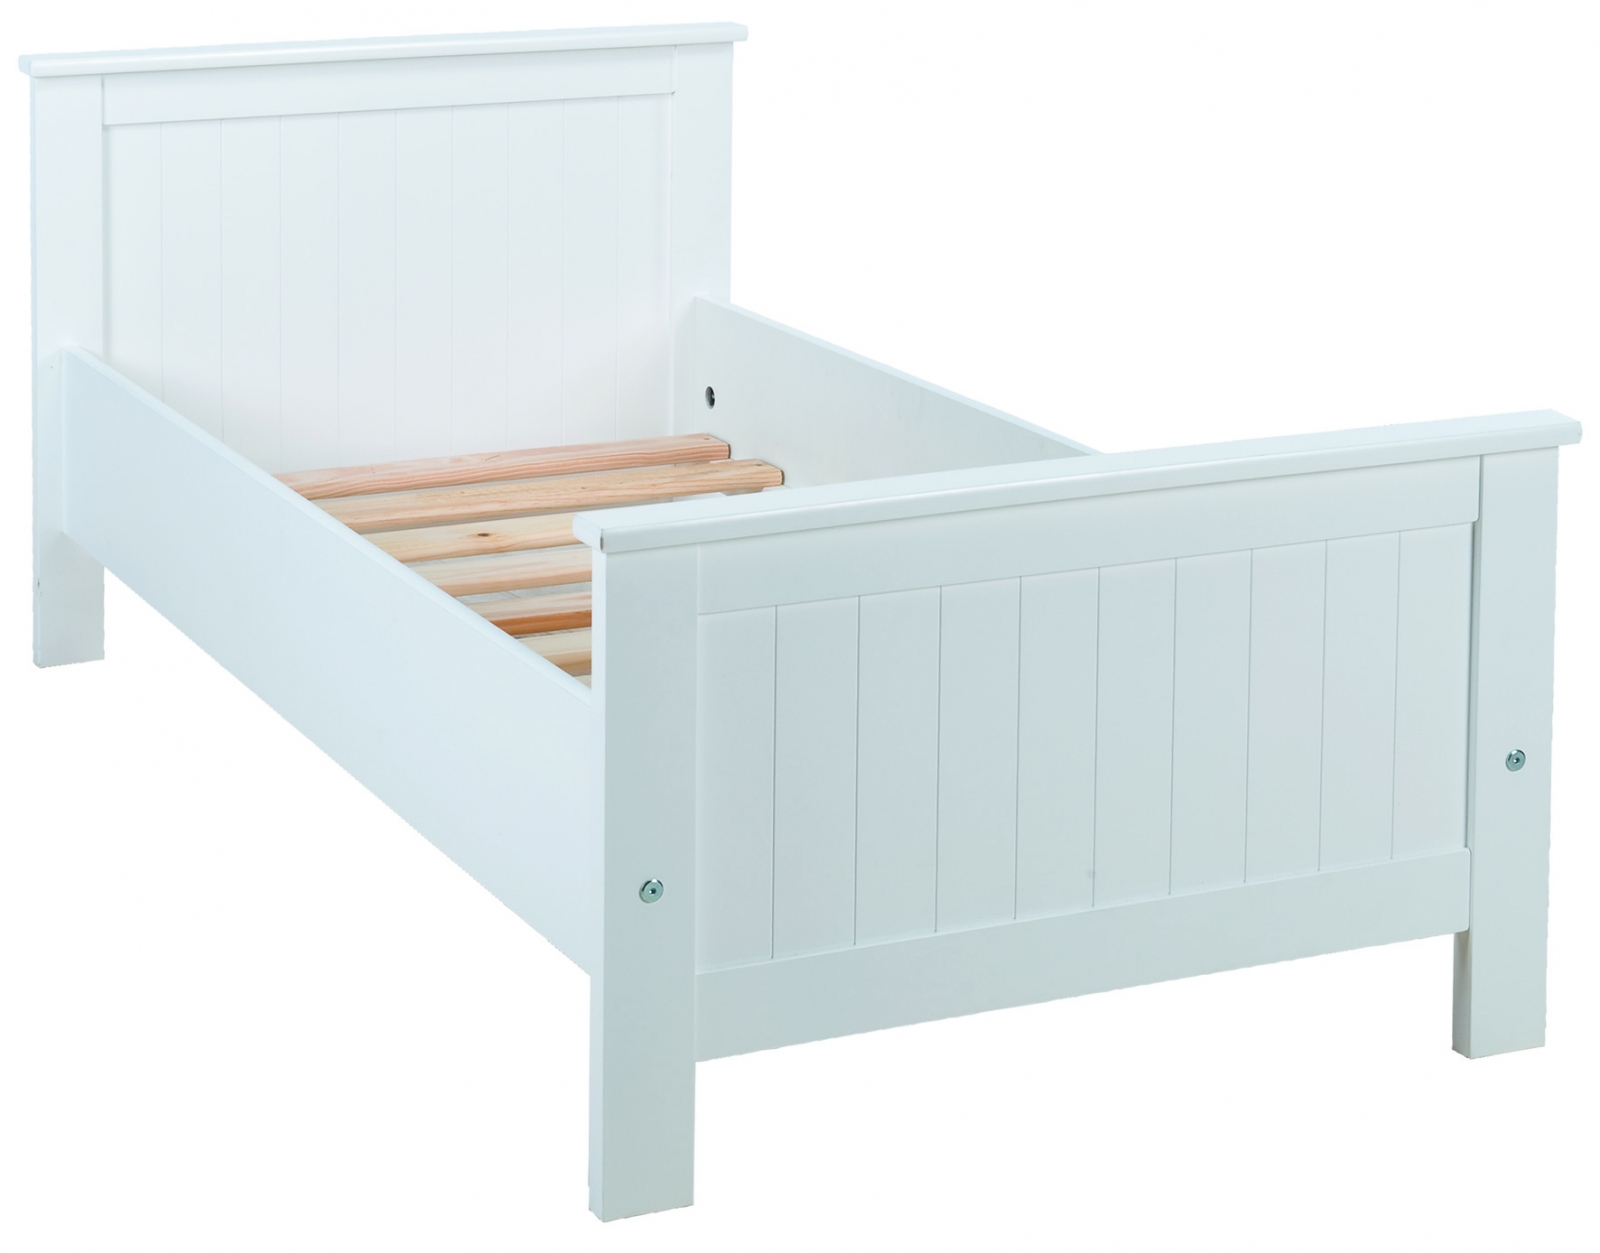 Coming Kids Toddler Bed 70 x 150 cm.